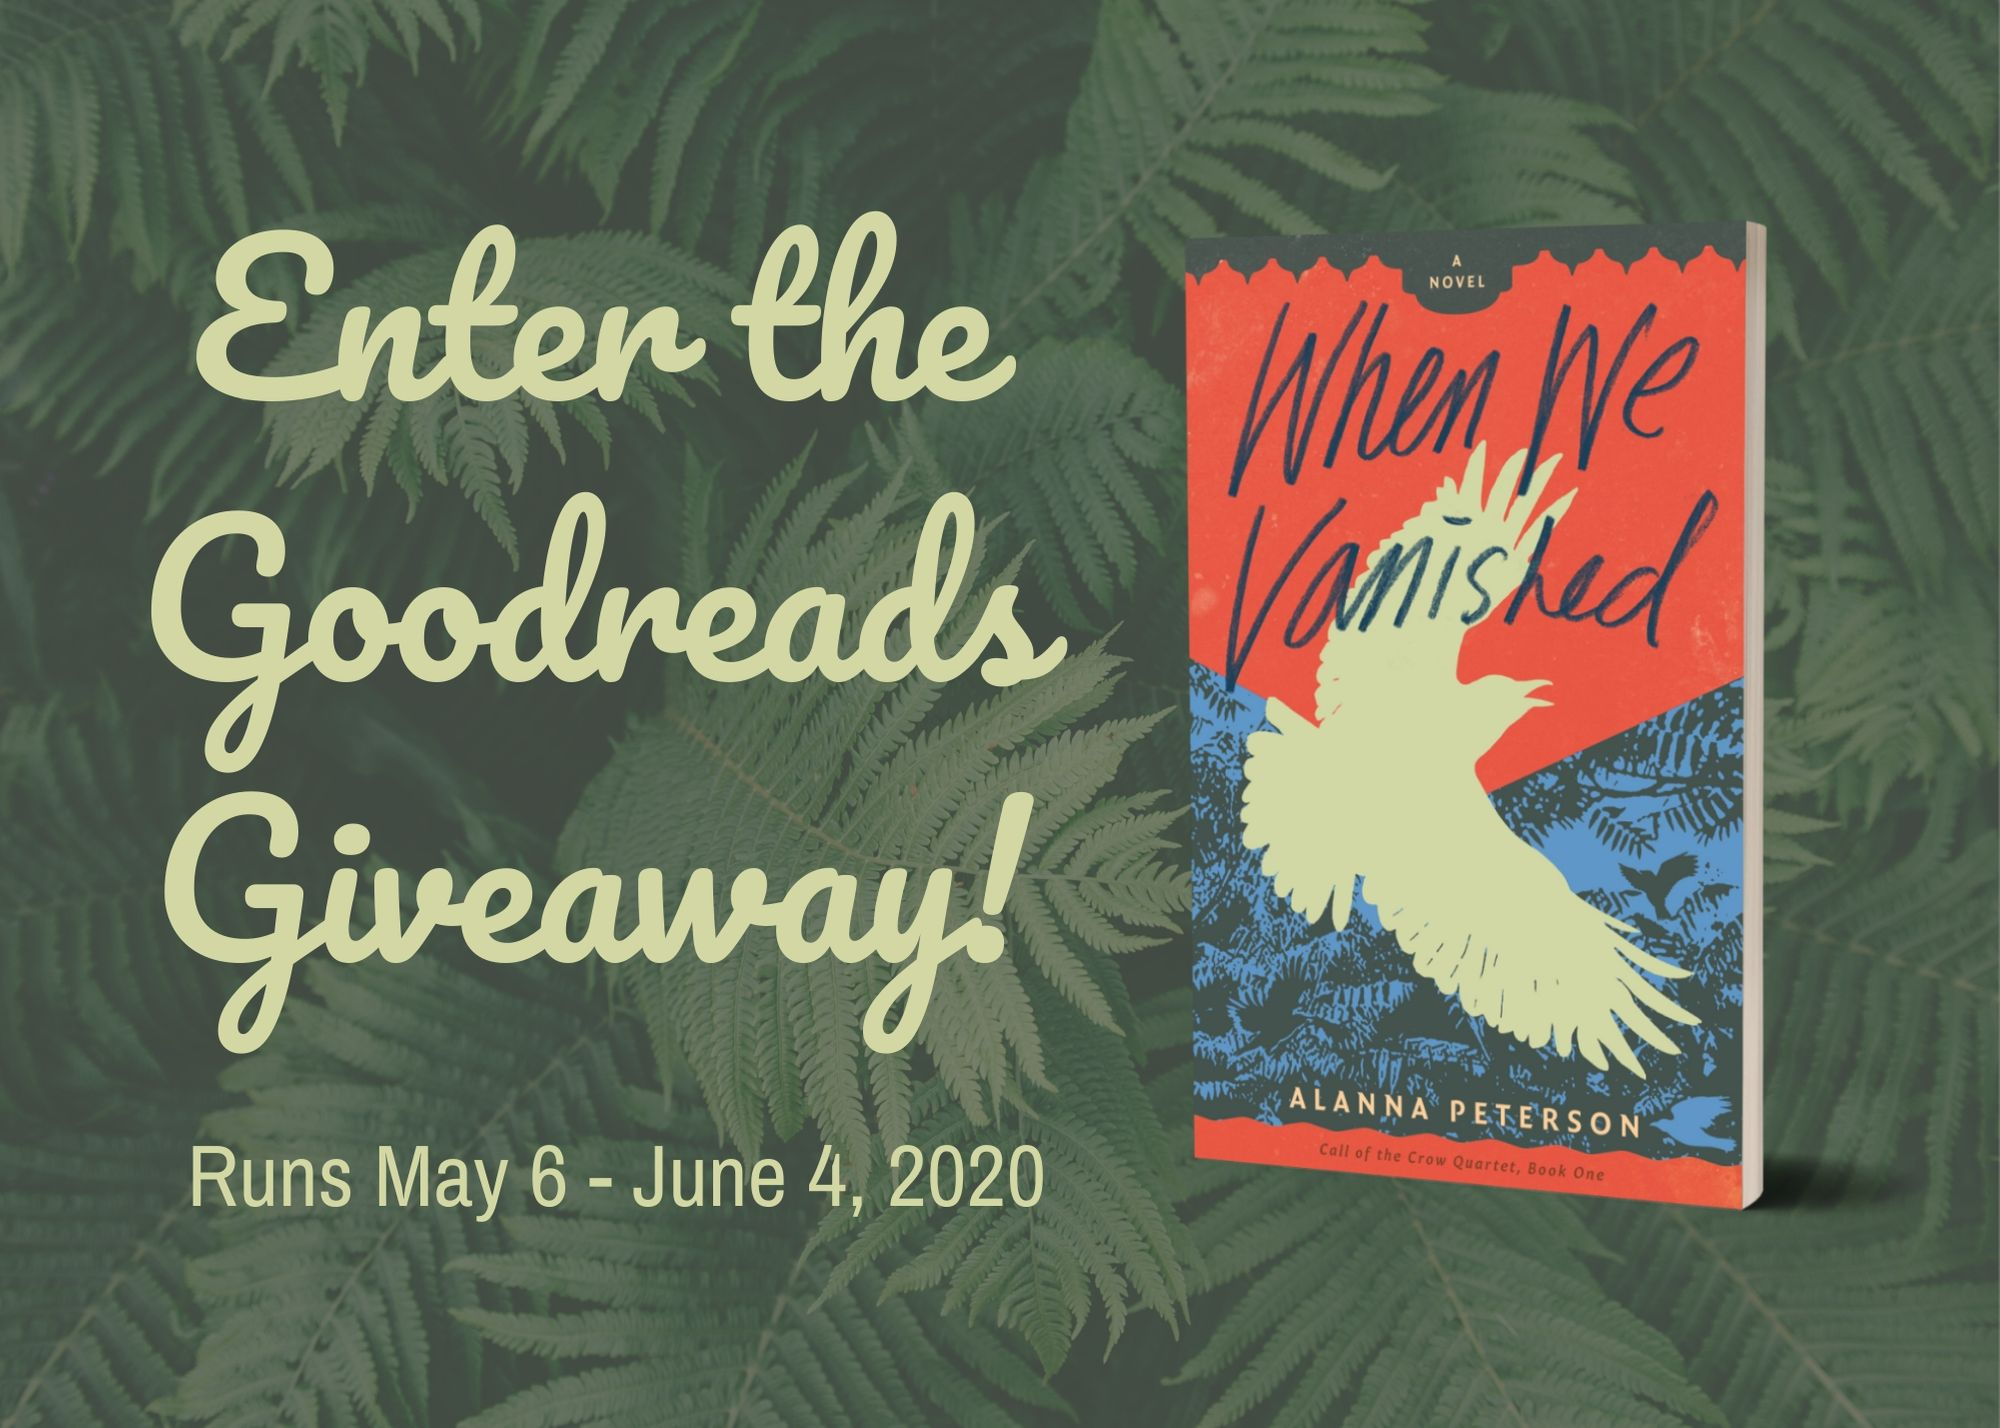 When We Vanished Goodreads Giveaway